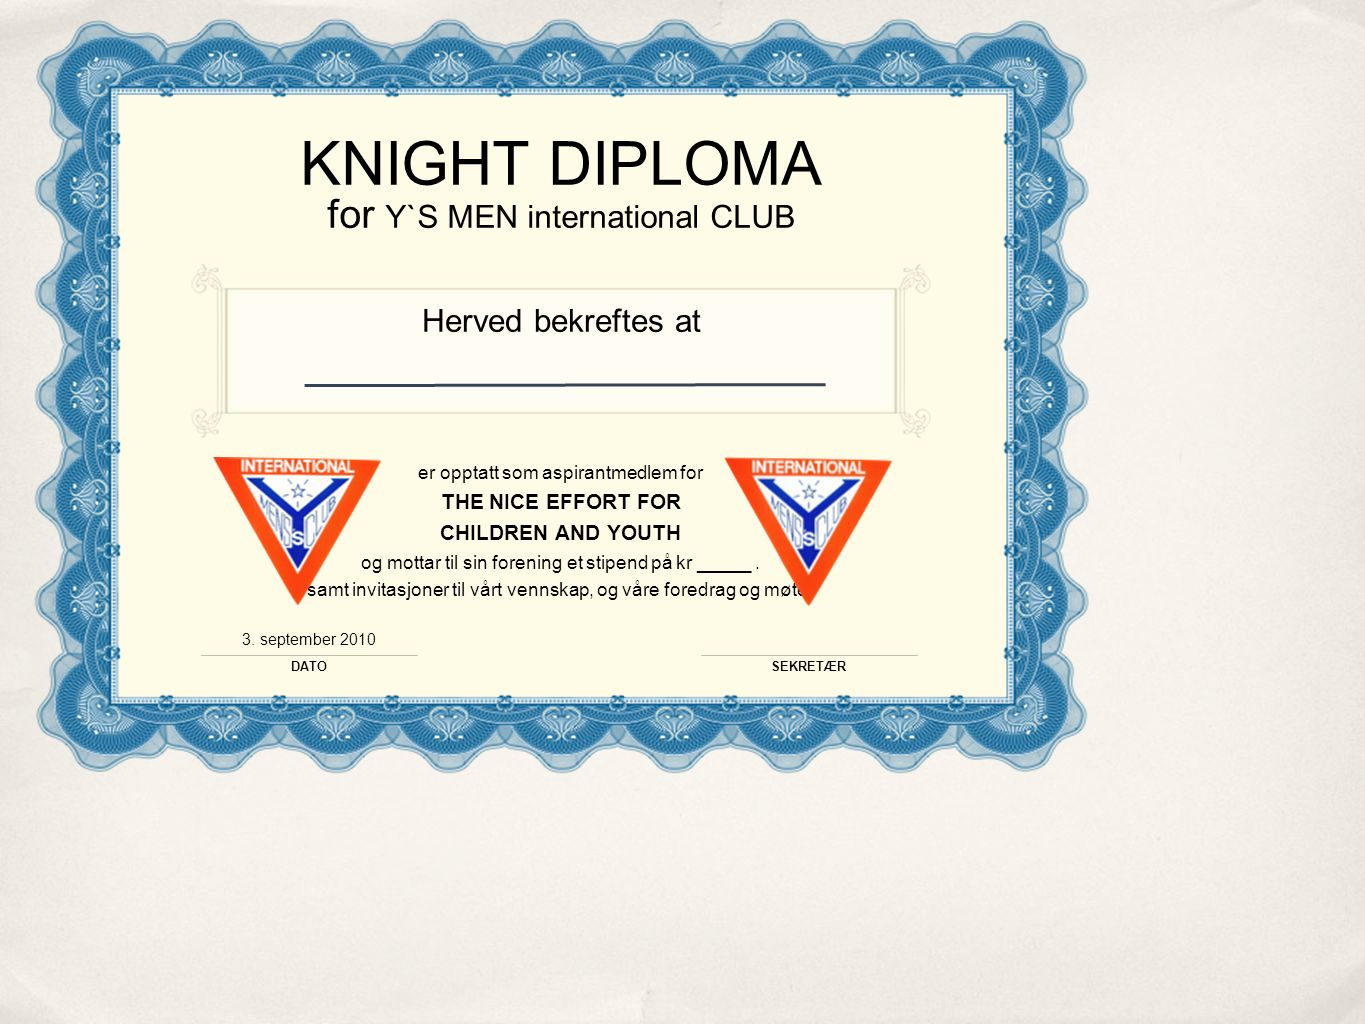 KNIGHT DIPLOMA for Y`S MEN international CLUB Herved bekreftes at er opptatt som aspirantmedlem for THE NICE EFFORT FOR CHILDREN AND YOUTH og mottar til sin forening et stipend på kr _____.